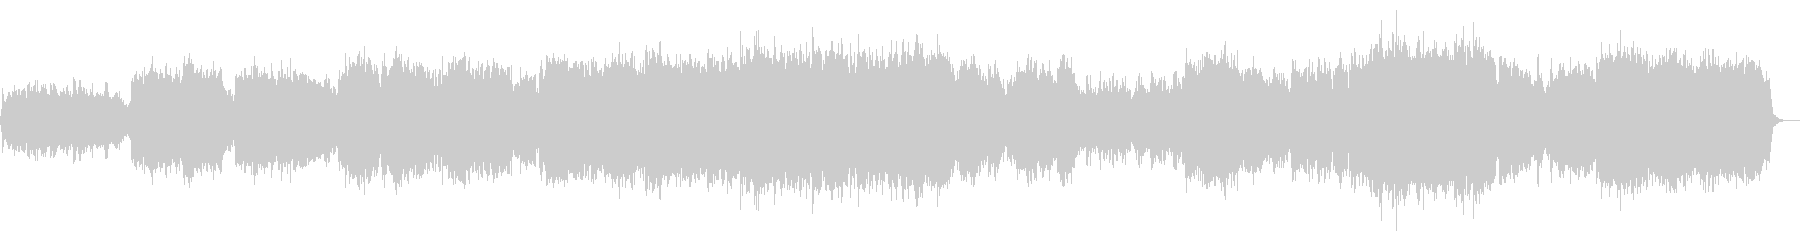 BGM of moving trumpet at twilight's unreproduced waveform